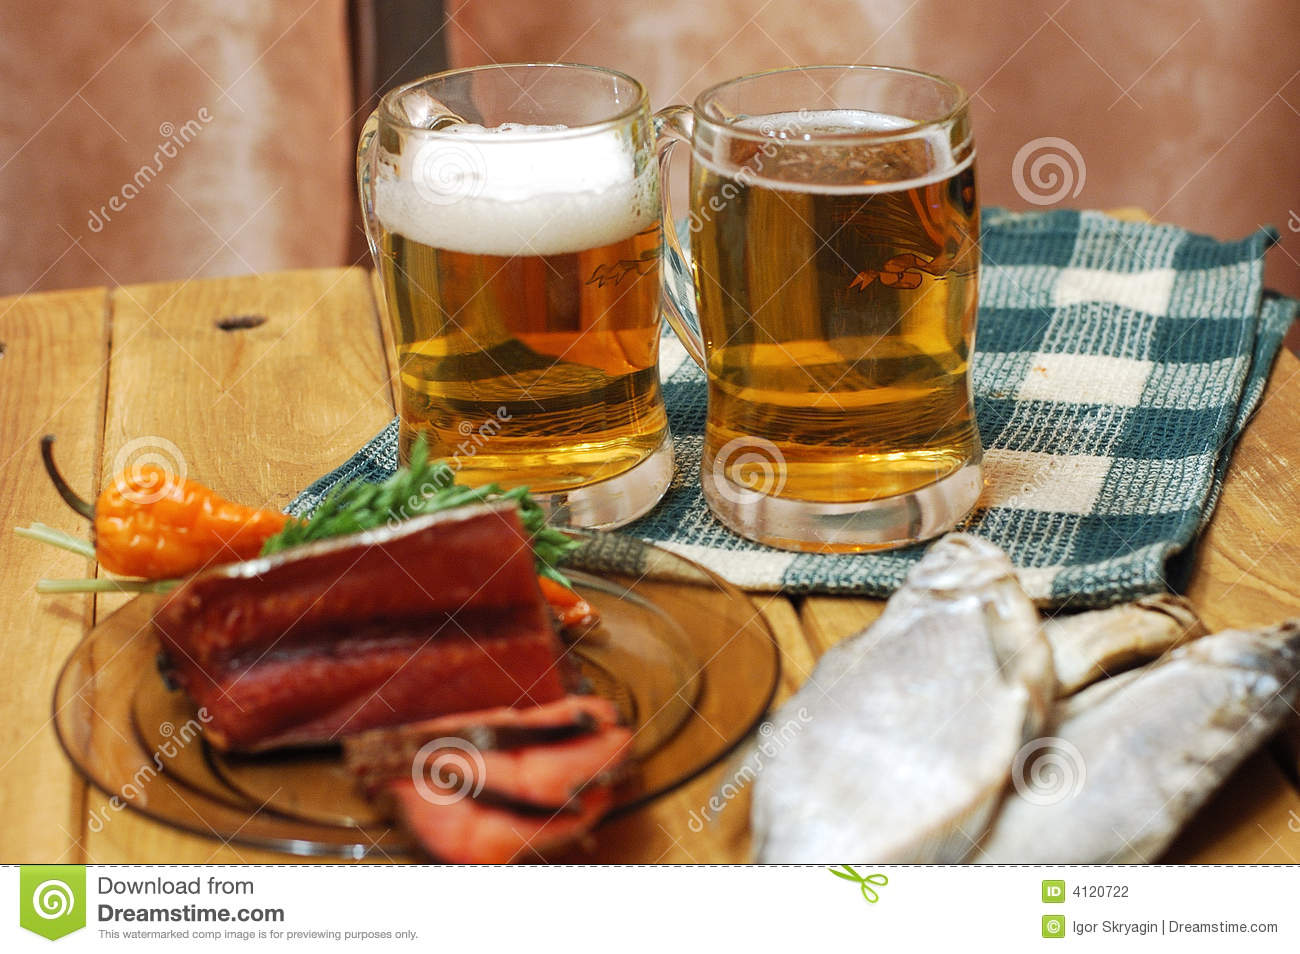 Beer and fish on table stock photography image 4120722 for Fish and beer